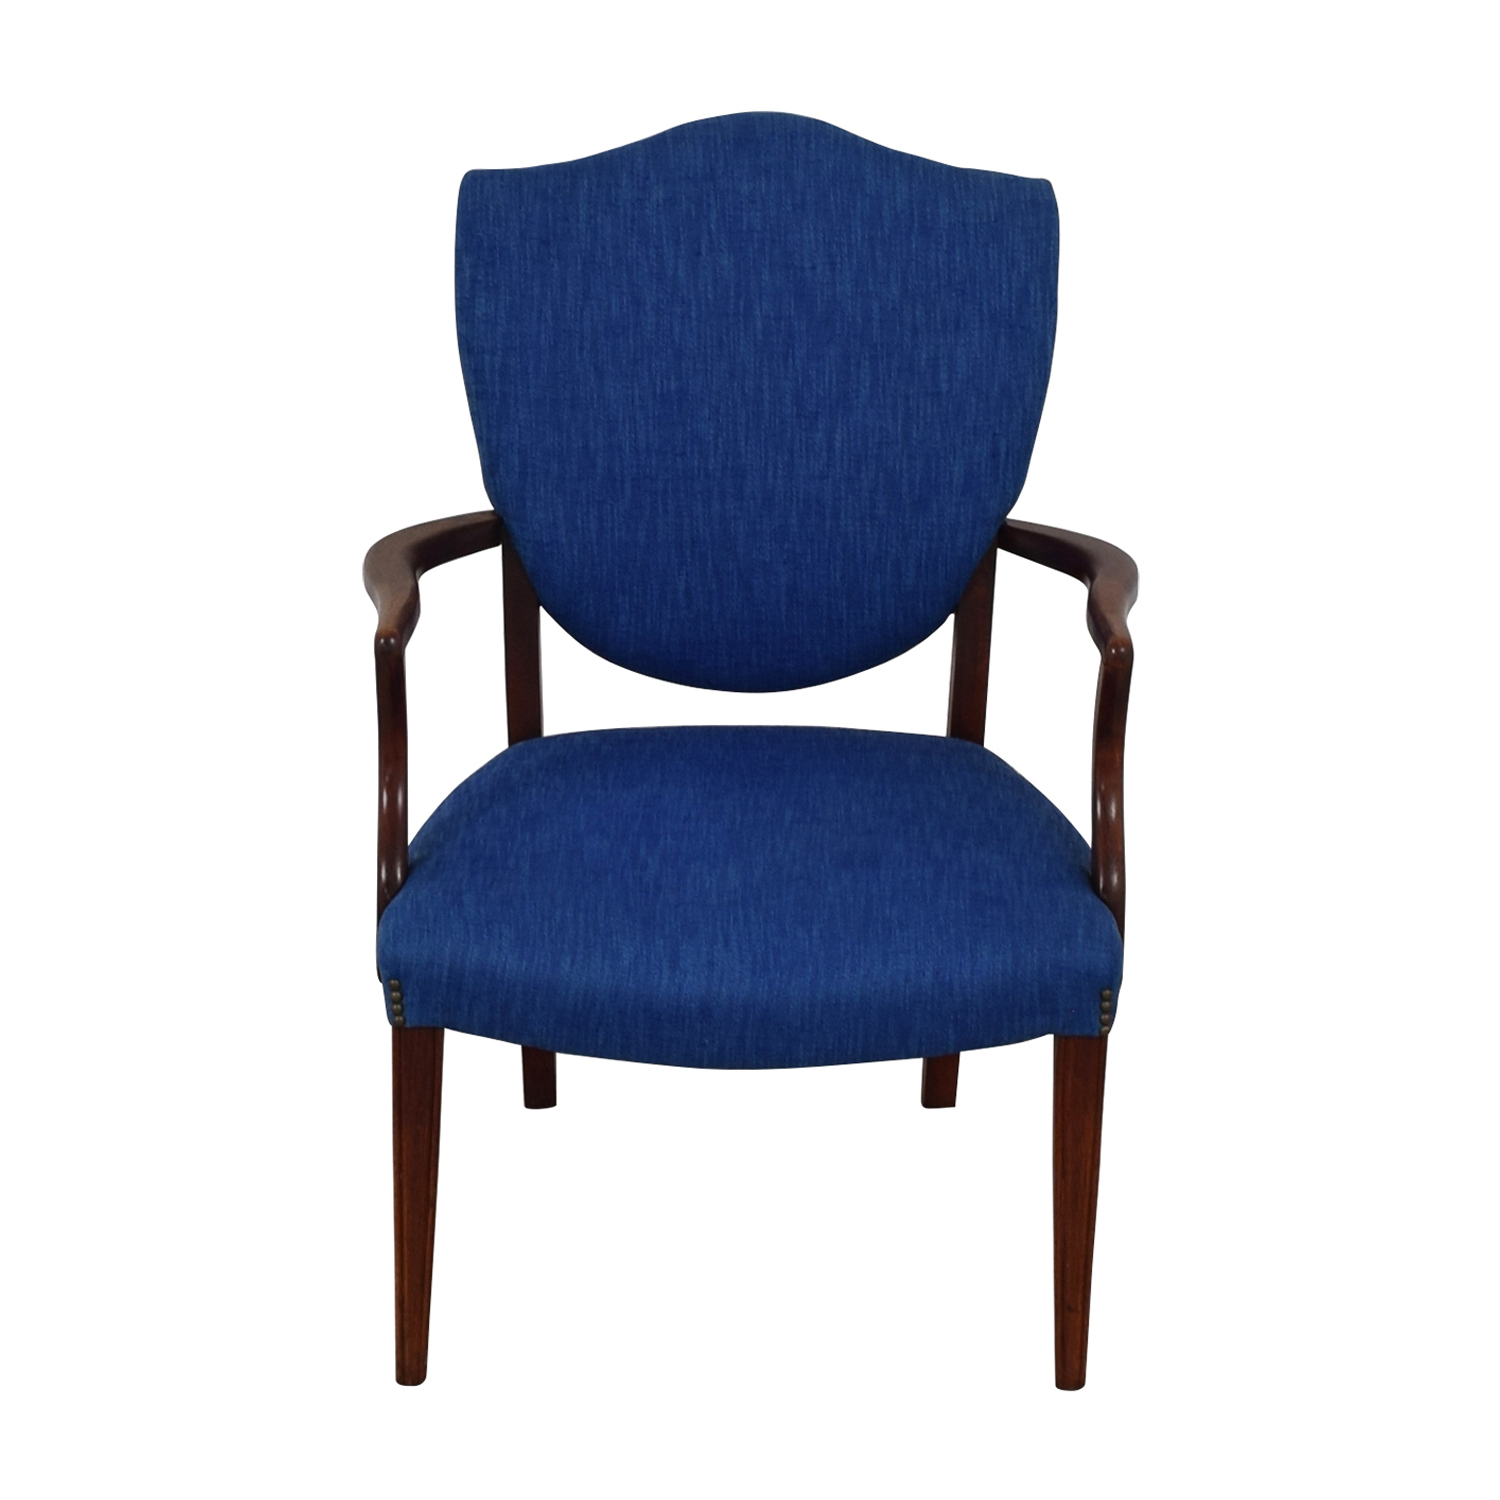 shop  Antique Wood and Blue Upholstered Arm Chair online